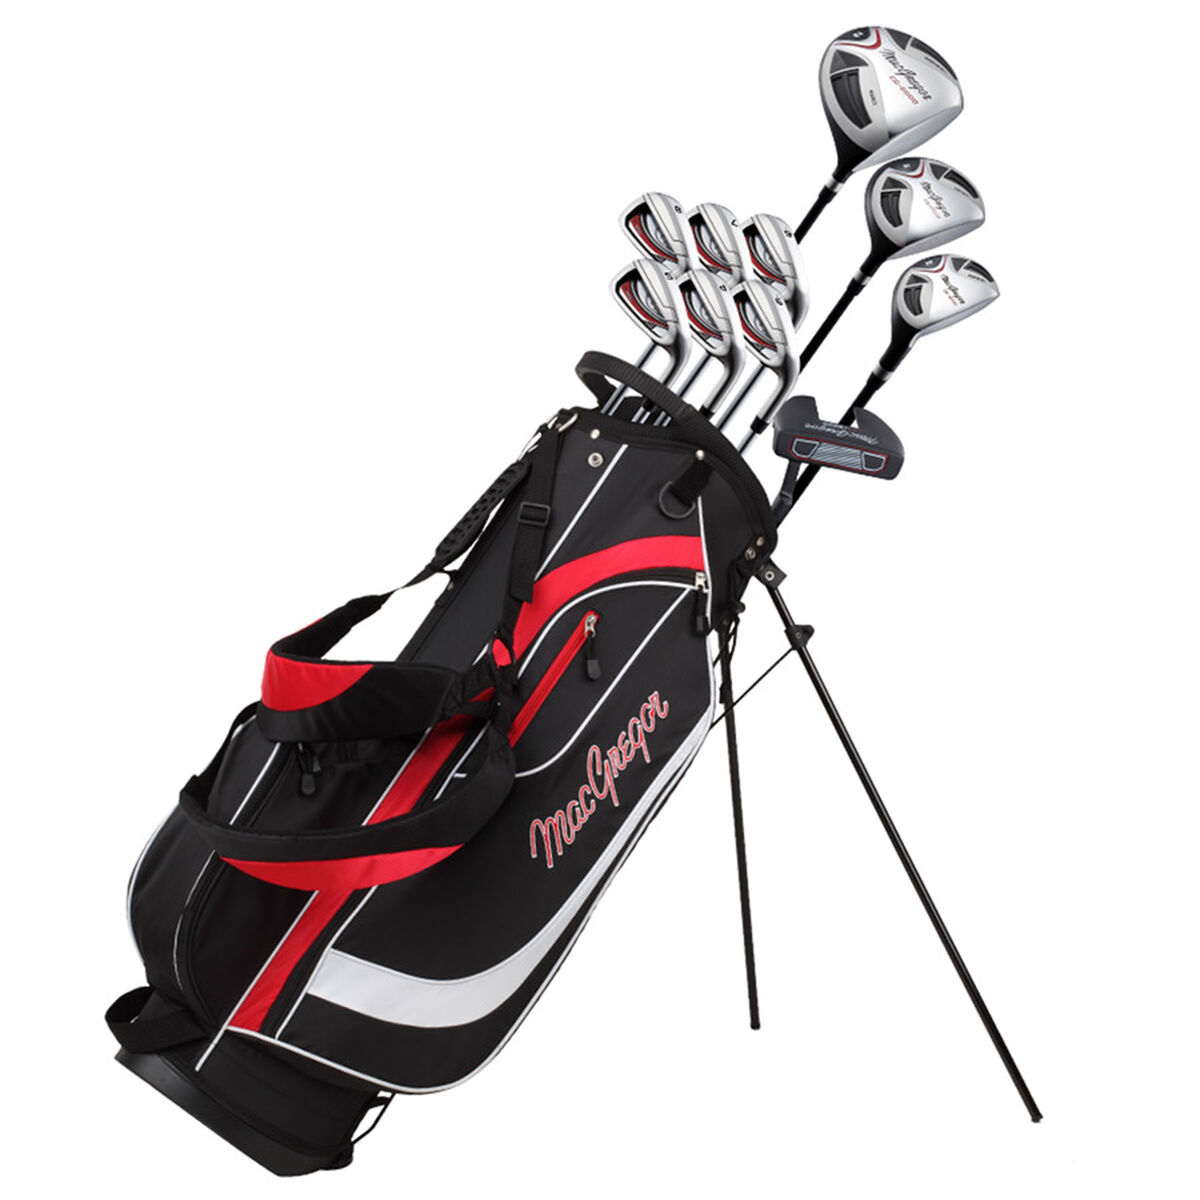 MacGregor Black and Red CG2000 Golf Stand Bag Steel Right Hand Full Package Set, Size: One Size